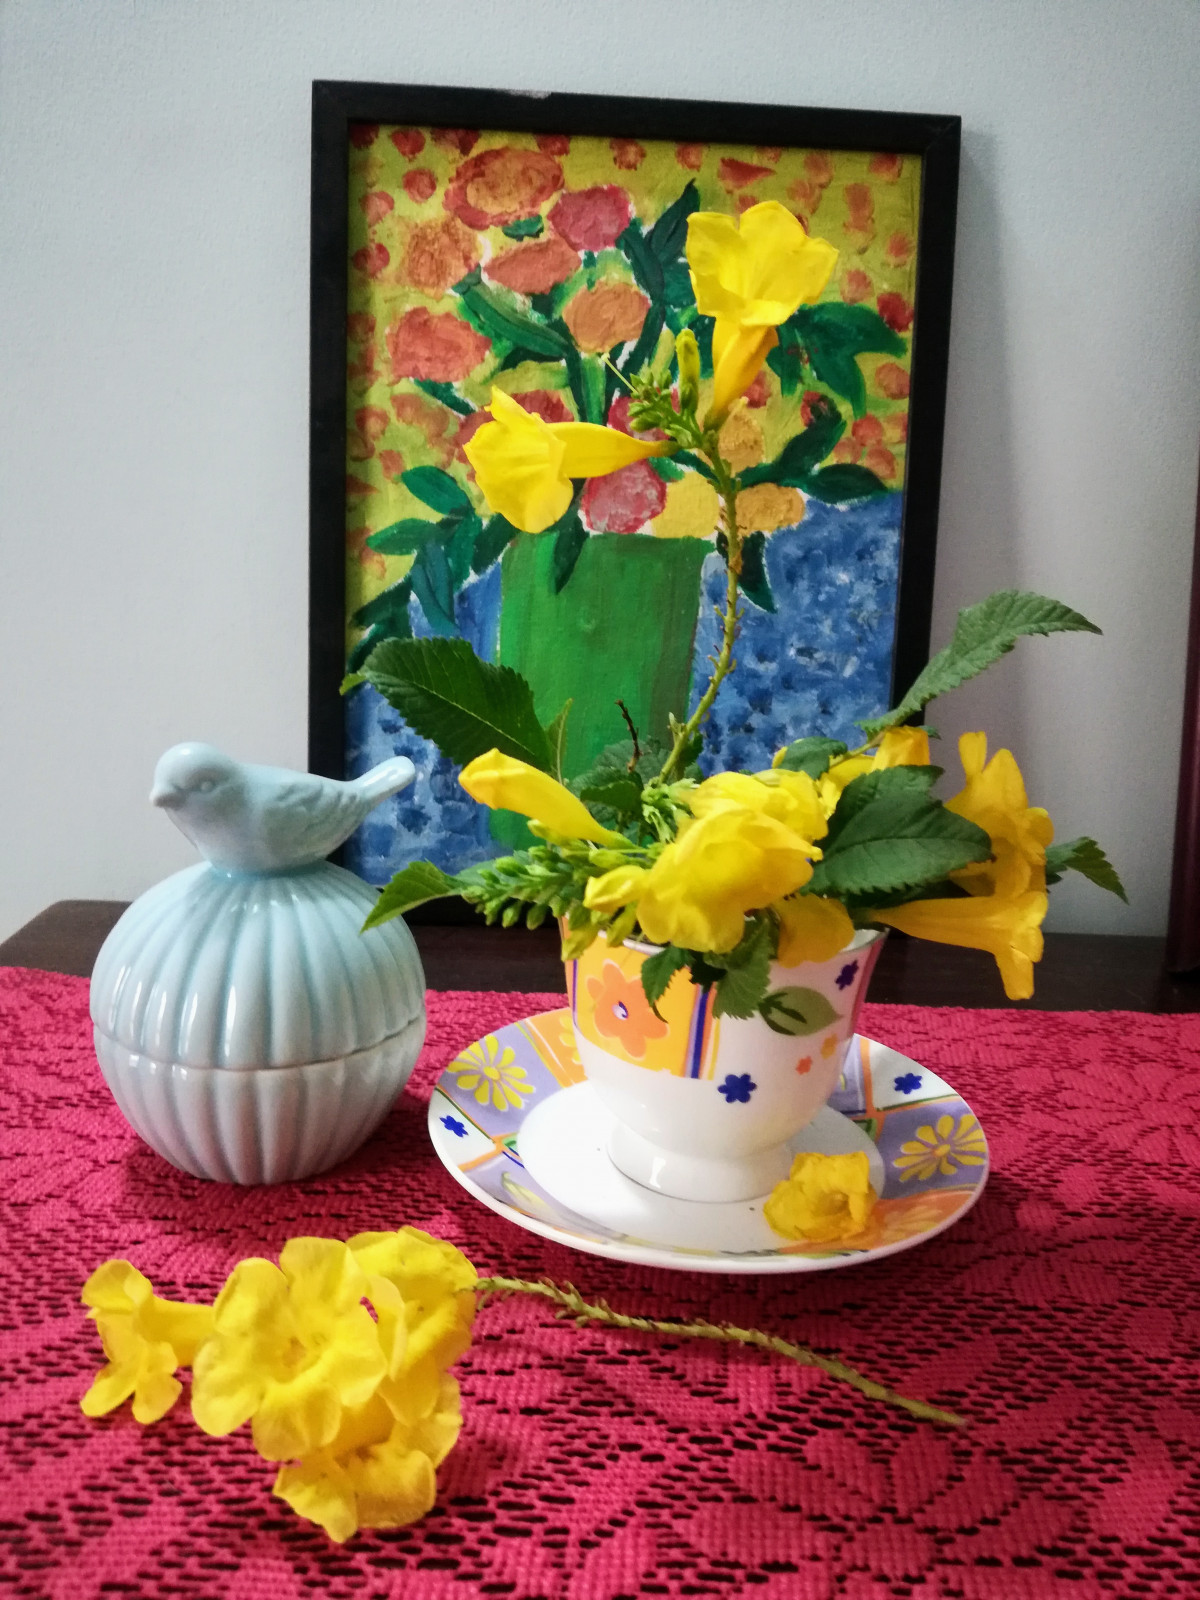 Tecoma in Tea cup DIY home decor using flower design dekko